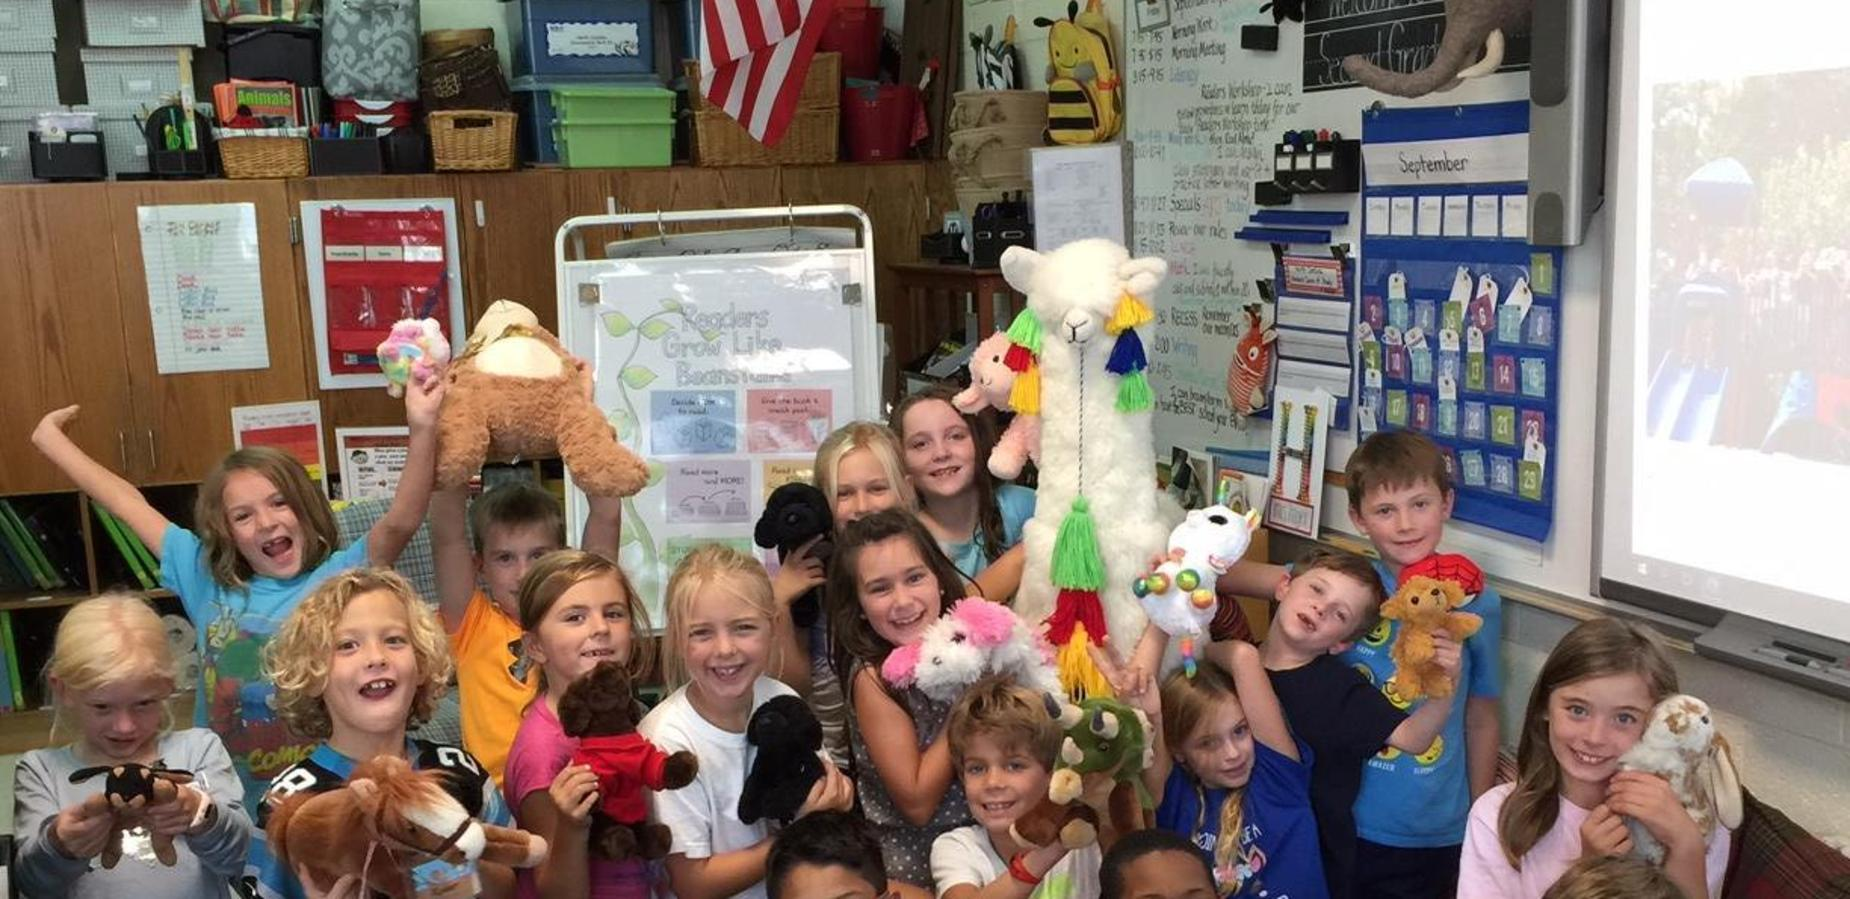 Students with stuffed animals